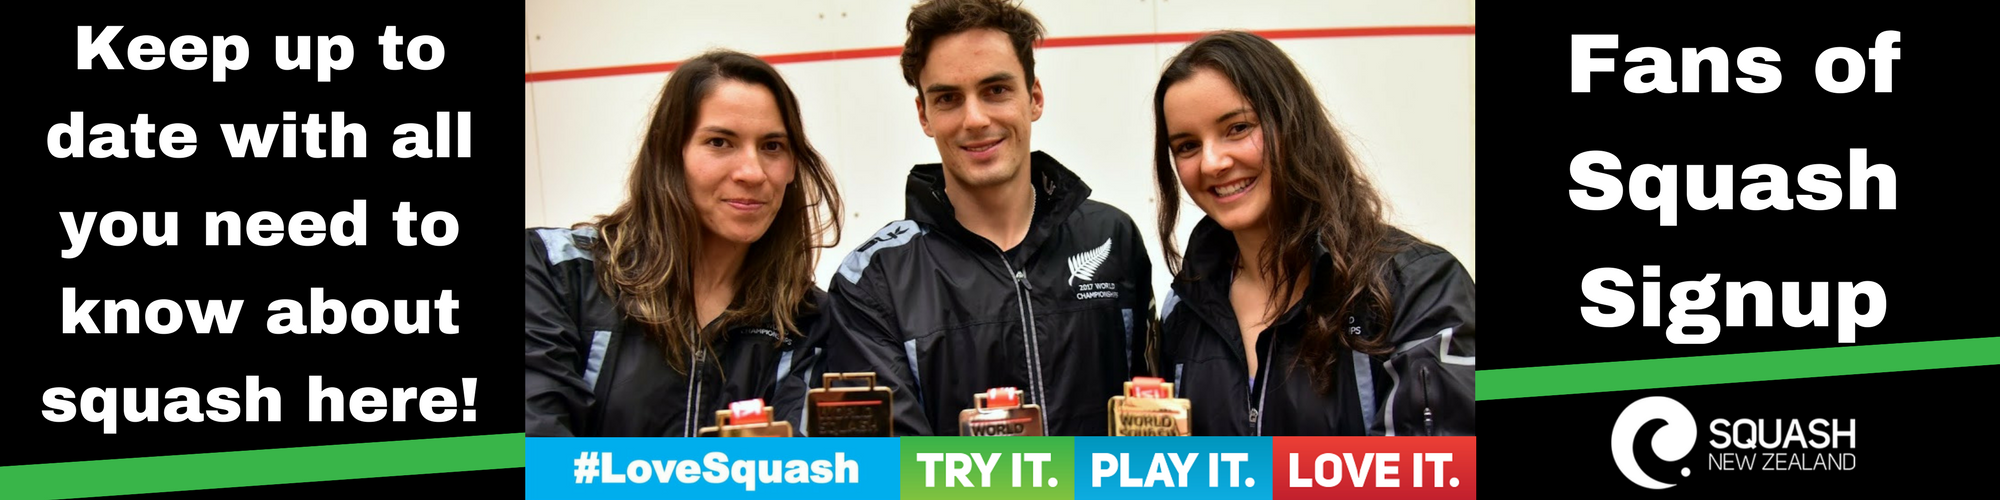 Psa Women Squash Signup Tour